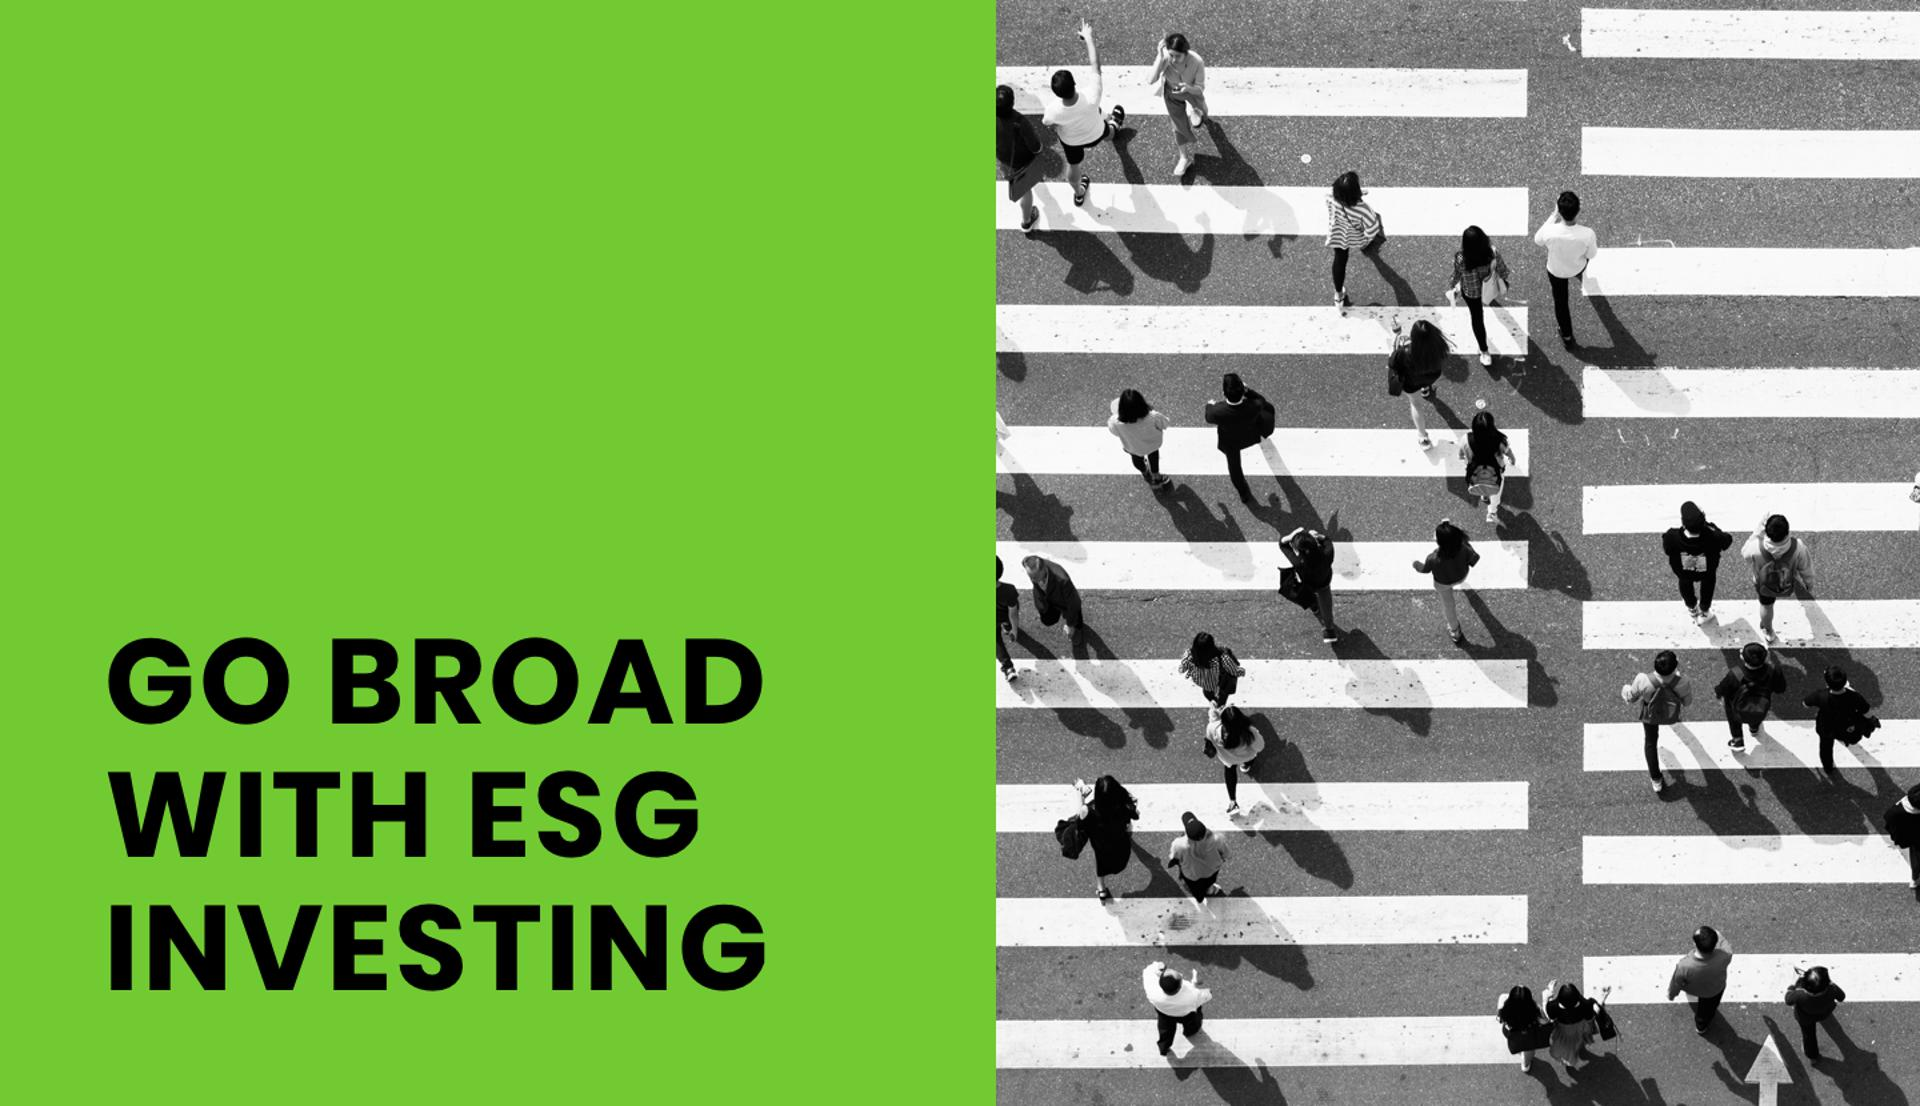 GO BROAD WITH ESG INVESTING